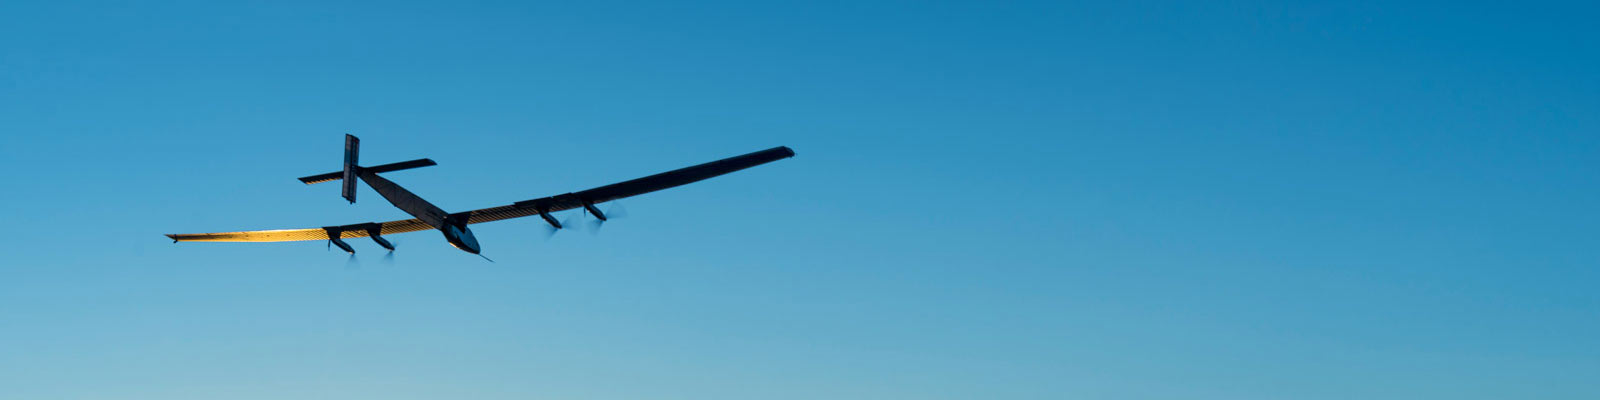 Solar Impulse - Background